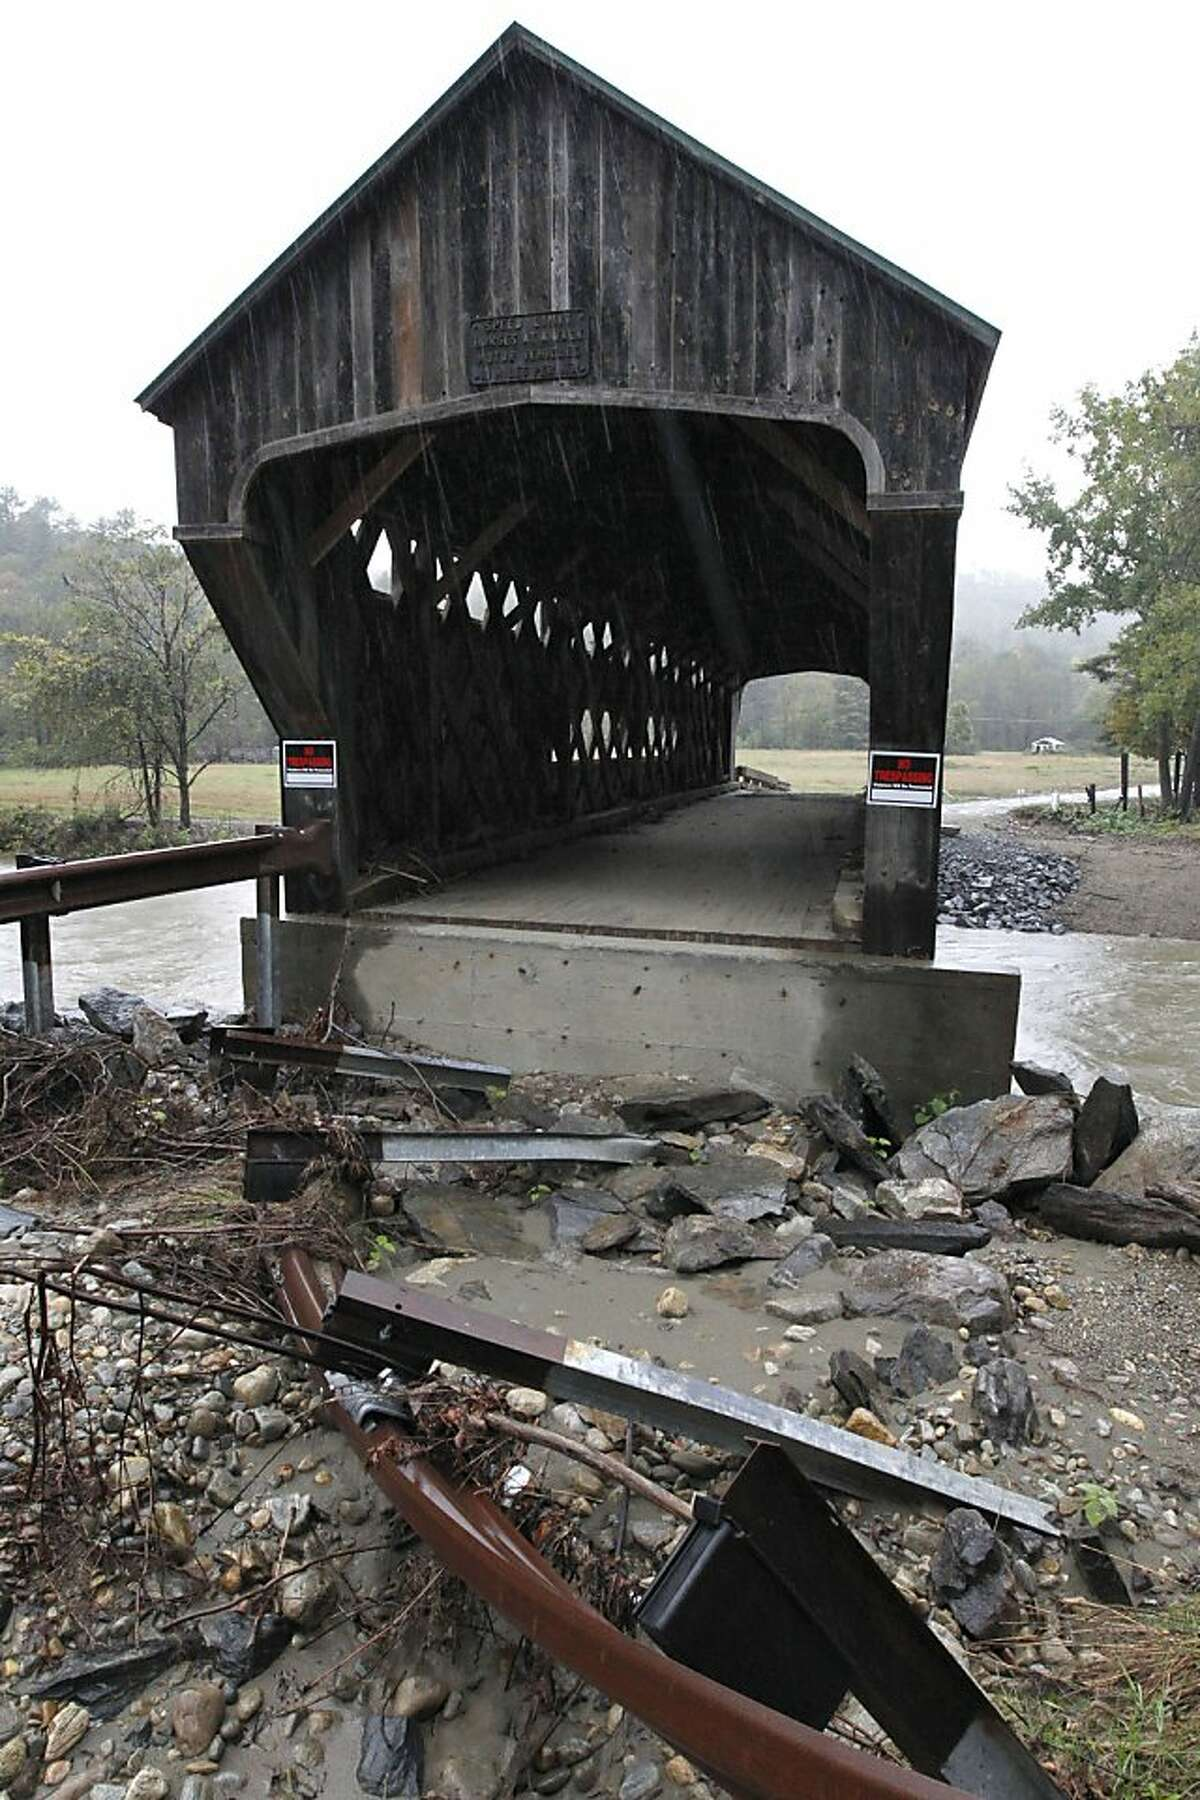 In this Thursday, Sept. 29, 2011 photo the flood-damaged Worrall covered bridge spans the Williams River, in Rockingham, Vt. The Worrall bridge, constructed in the late 19th century, stands downstream from where the Bartonsville covered bridge once stood in Rockingham before it was destroyed in August of 2011 by flooding from tropical storm Irene. (AP Photo/Steven Senne)